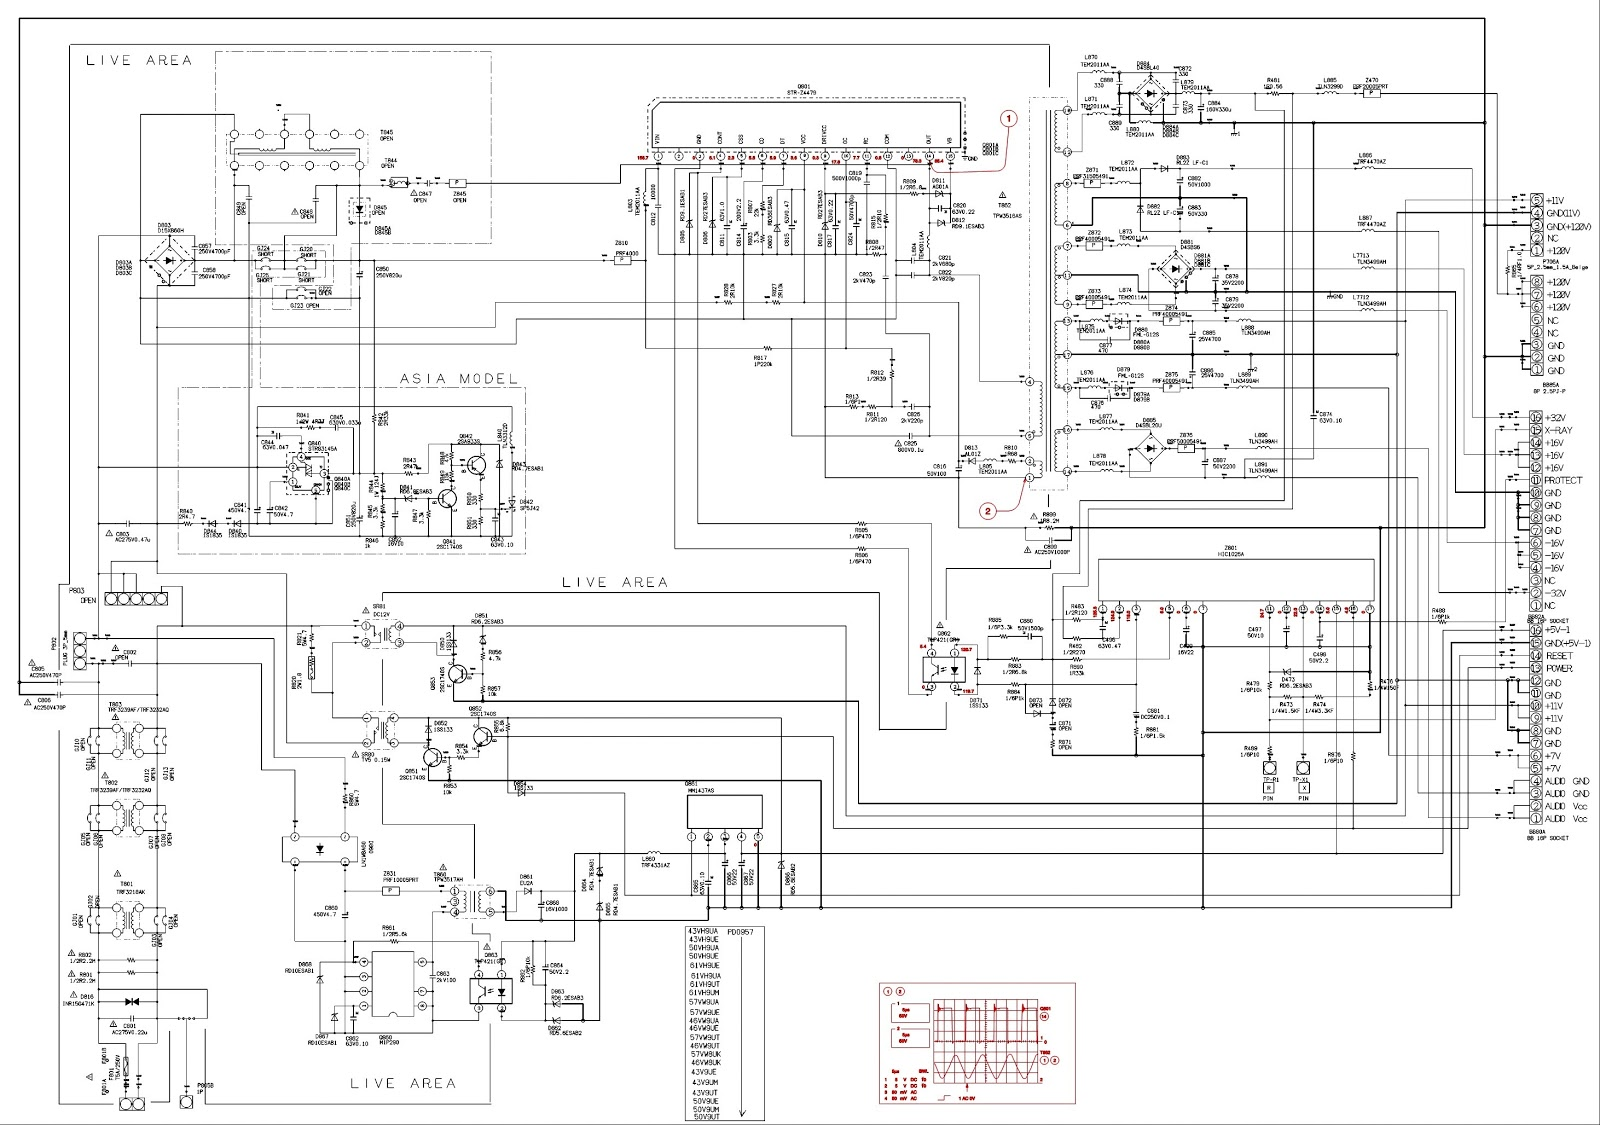 TOSHIBA 50 inch PROJECTION TV  SMPS SCHEMATIC | Electro help